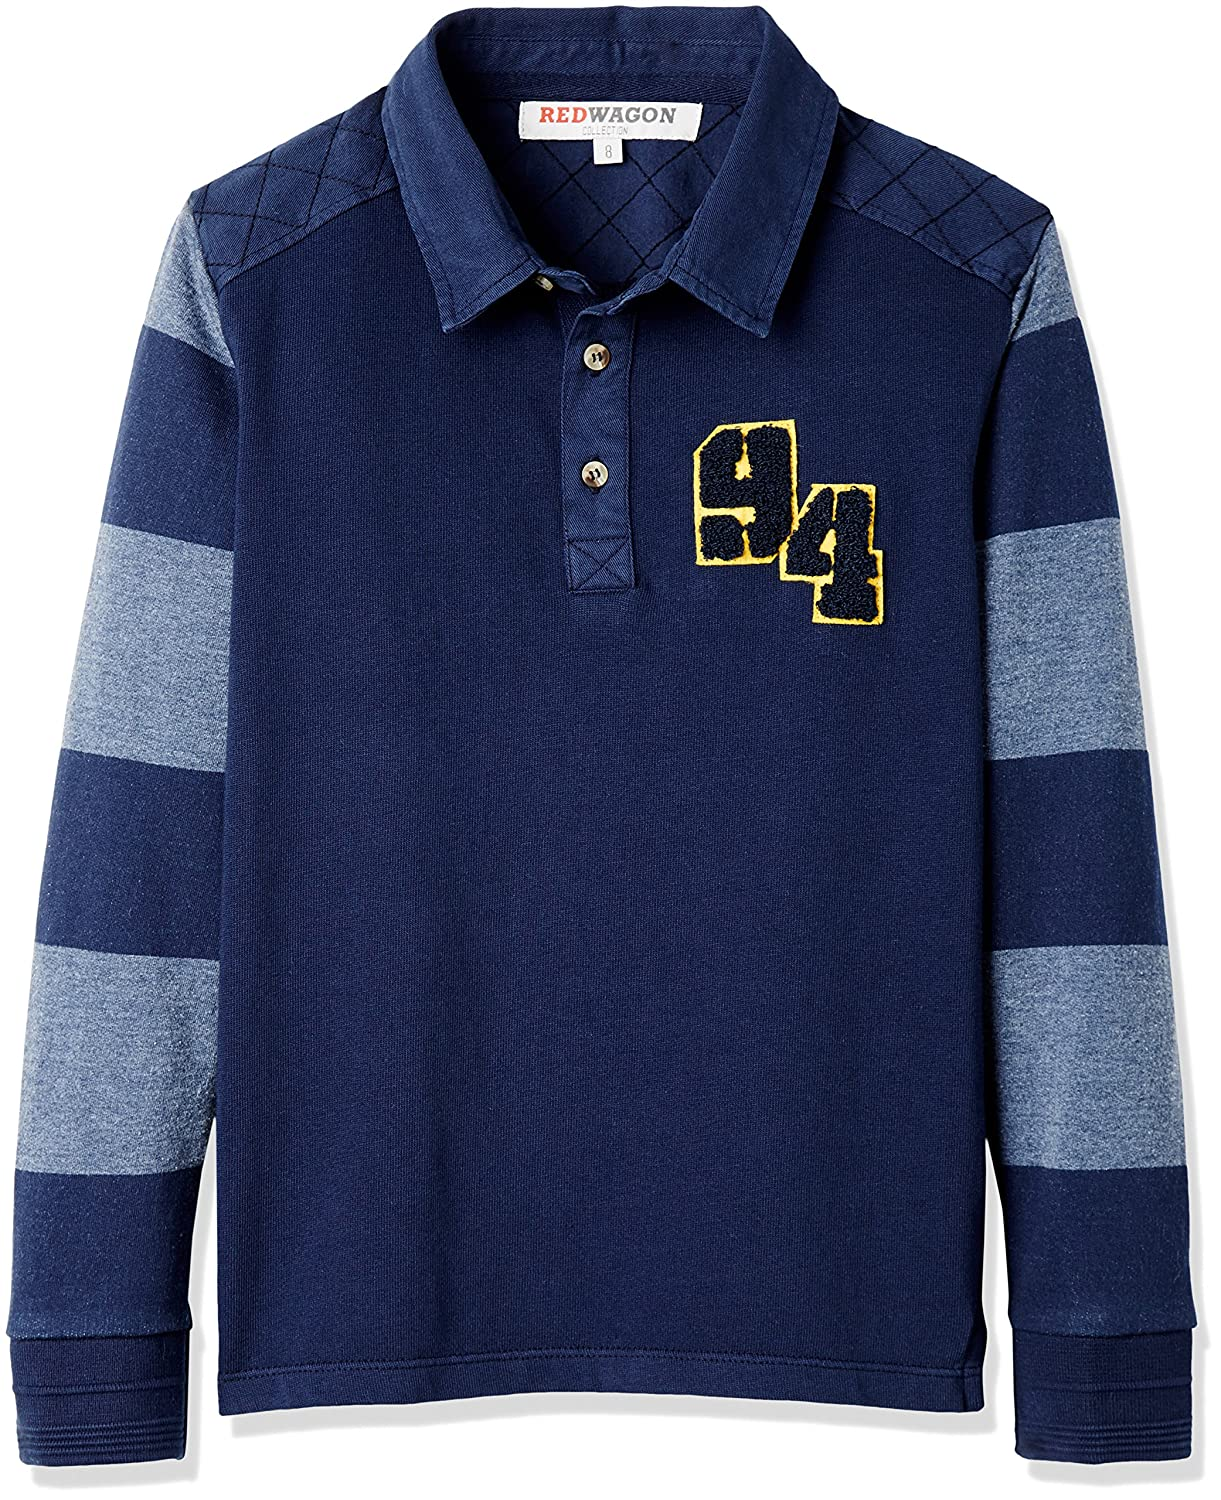 RED WAGON Boy's Striped Rugby Polo